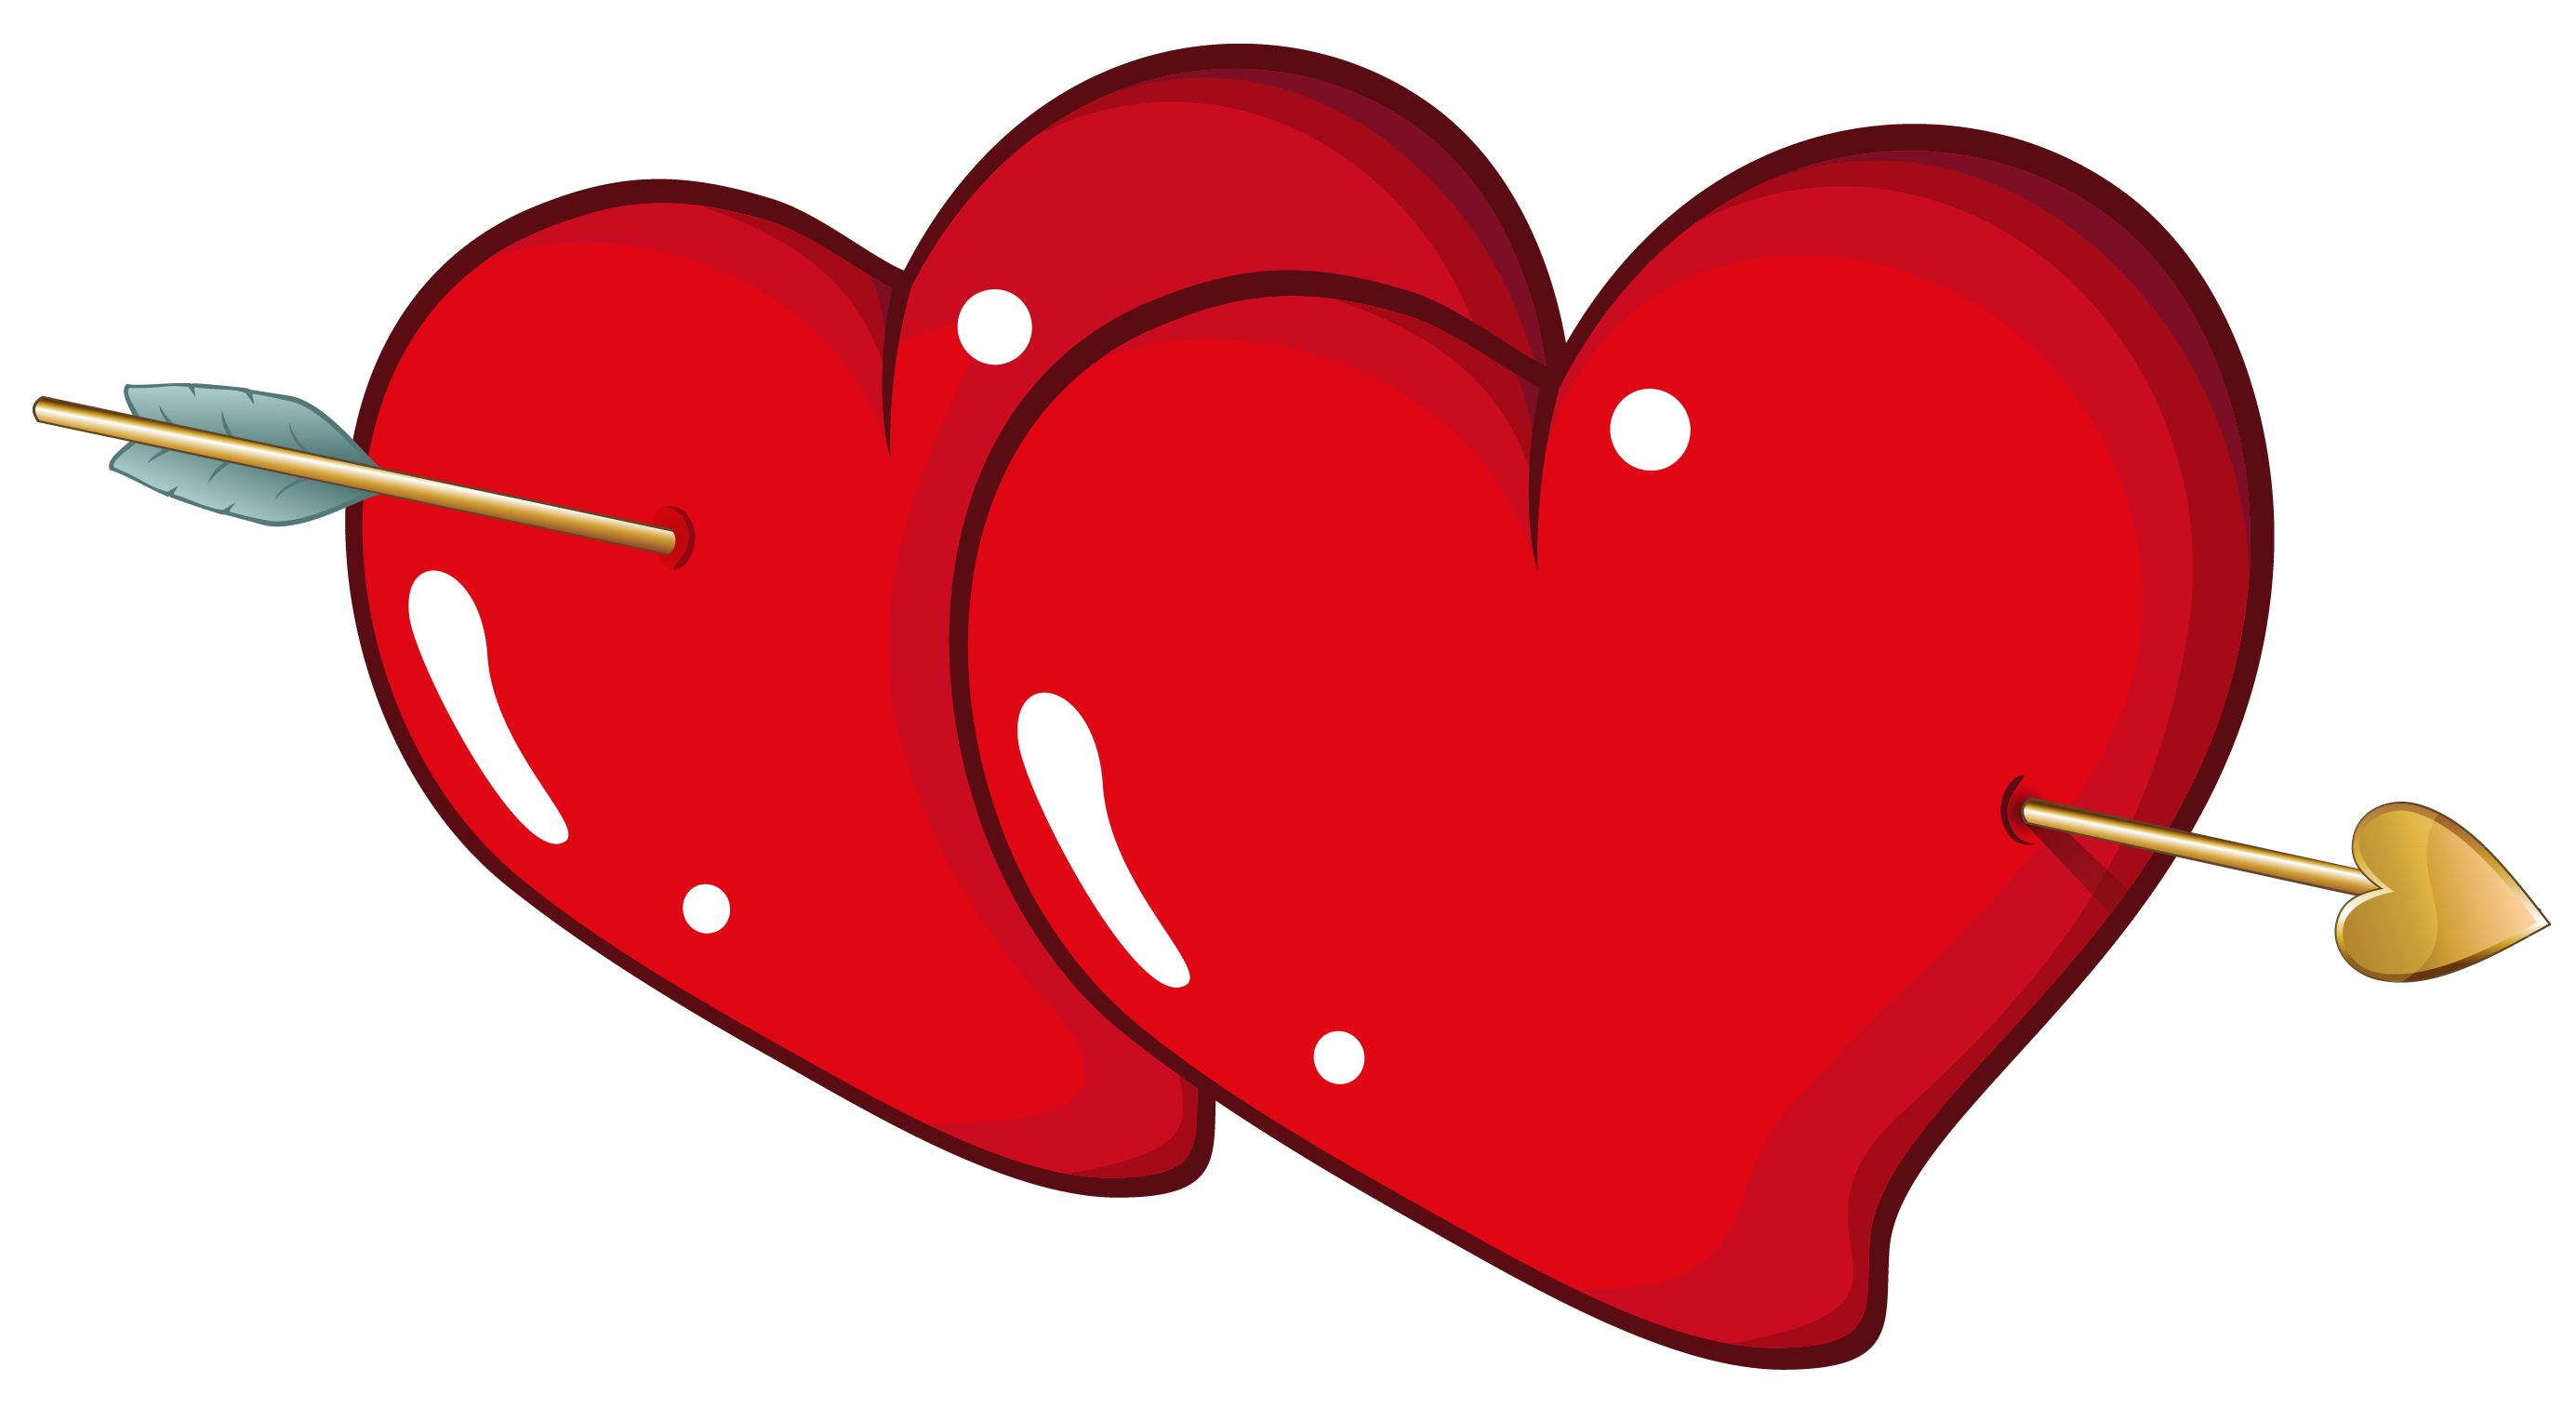 Check Out The Sticker I Made With Picsart Valentine Heart Heart With Arrow Heart Pictures